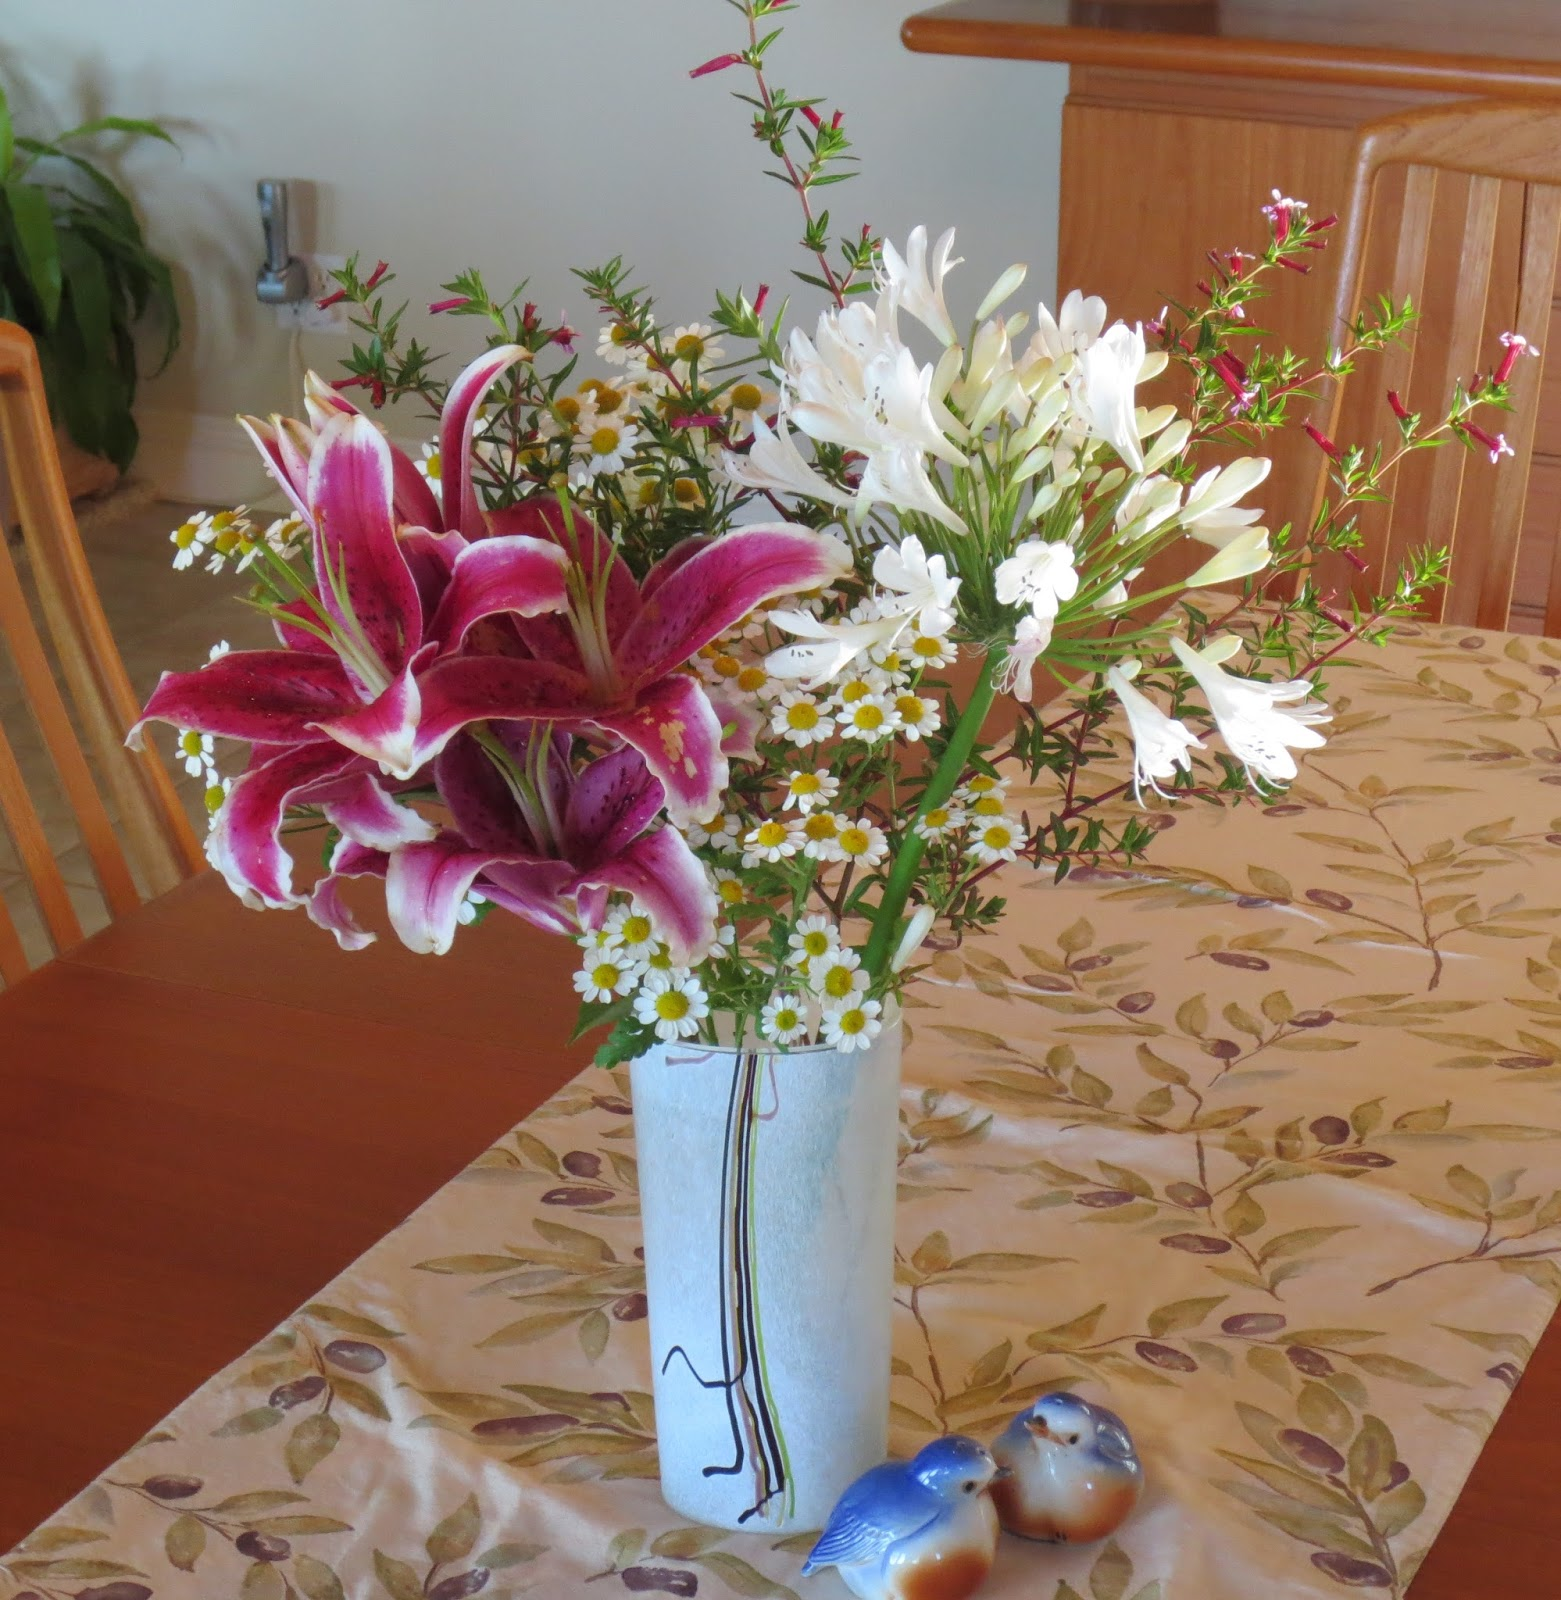 Late to the Garden Party: Bouquet: Summer's Last Hurrah?